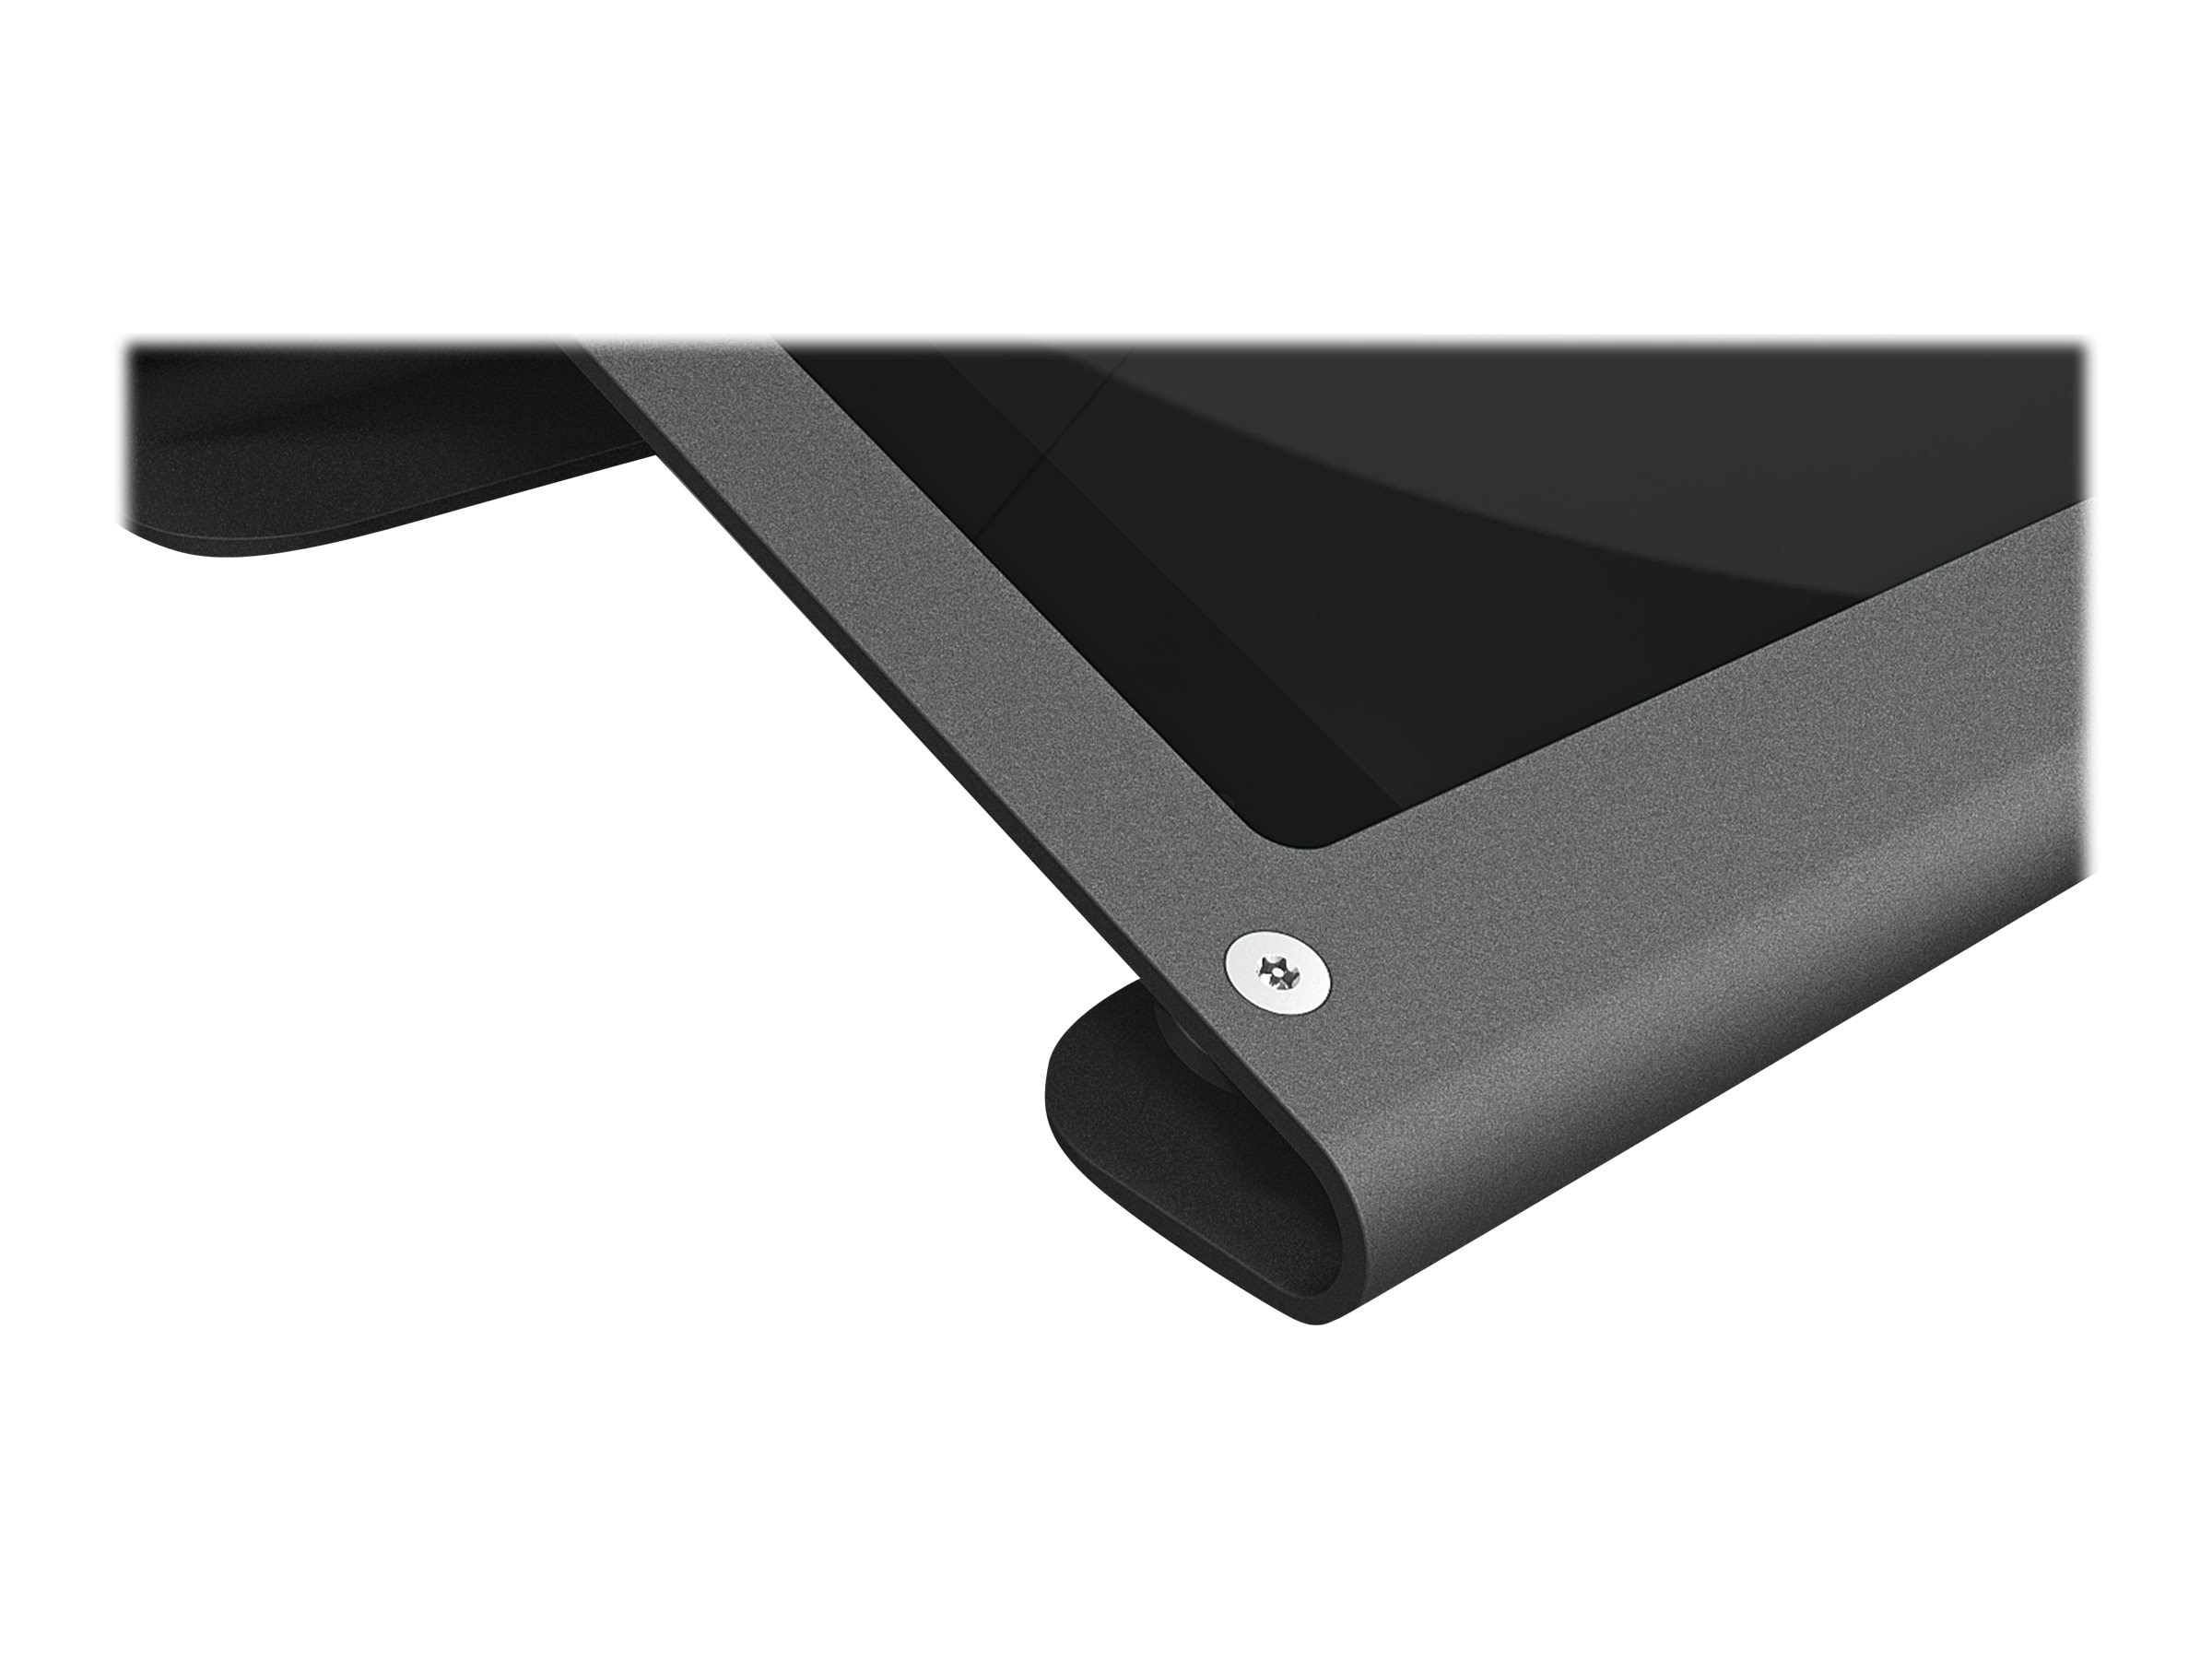 Kensington WINDFALL CONSOLE FOR SURFACE PRO 3 4, K67953US